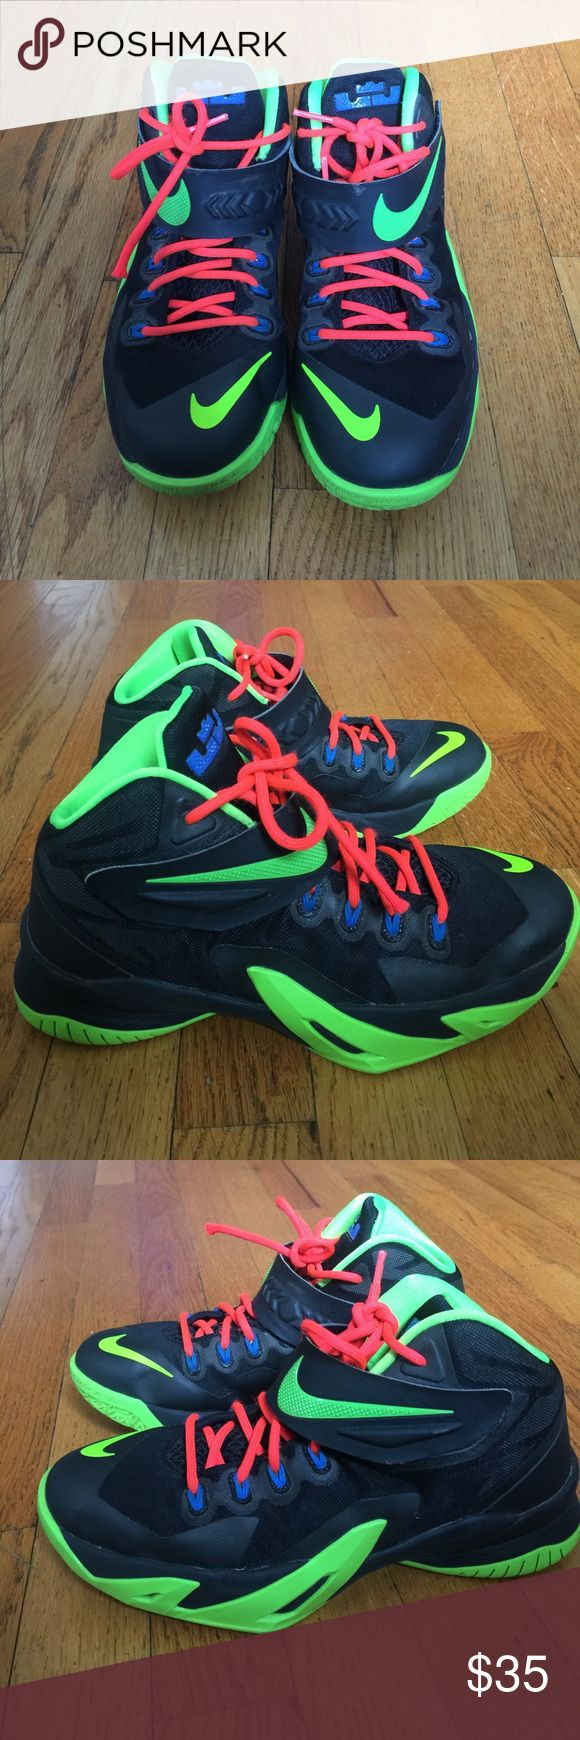 Nike Lebrons is EUC basketball shoe. A very nice multi color youth basketball in EUC. Nike Shoes Sneakers